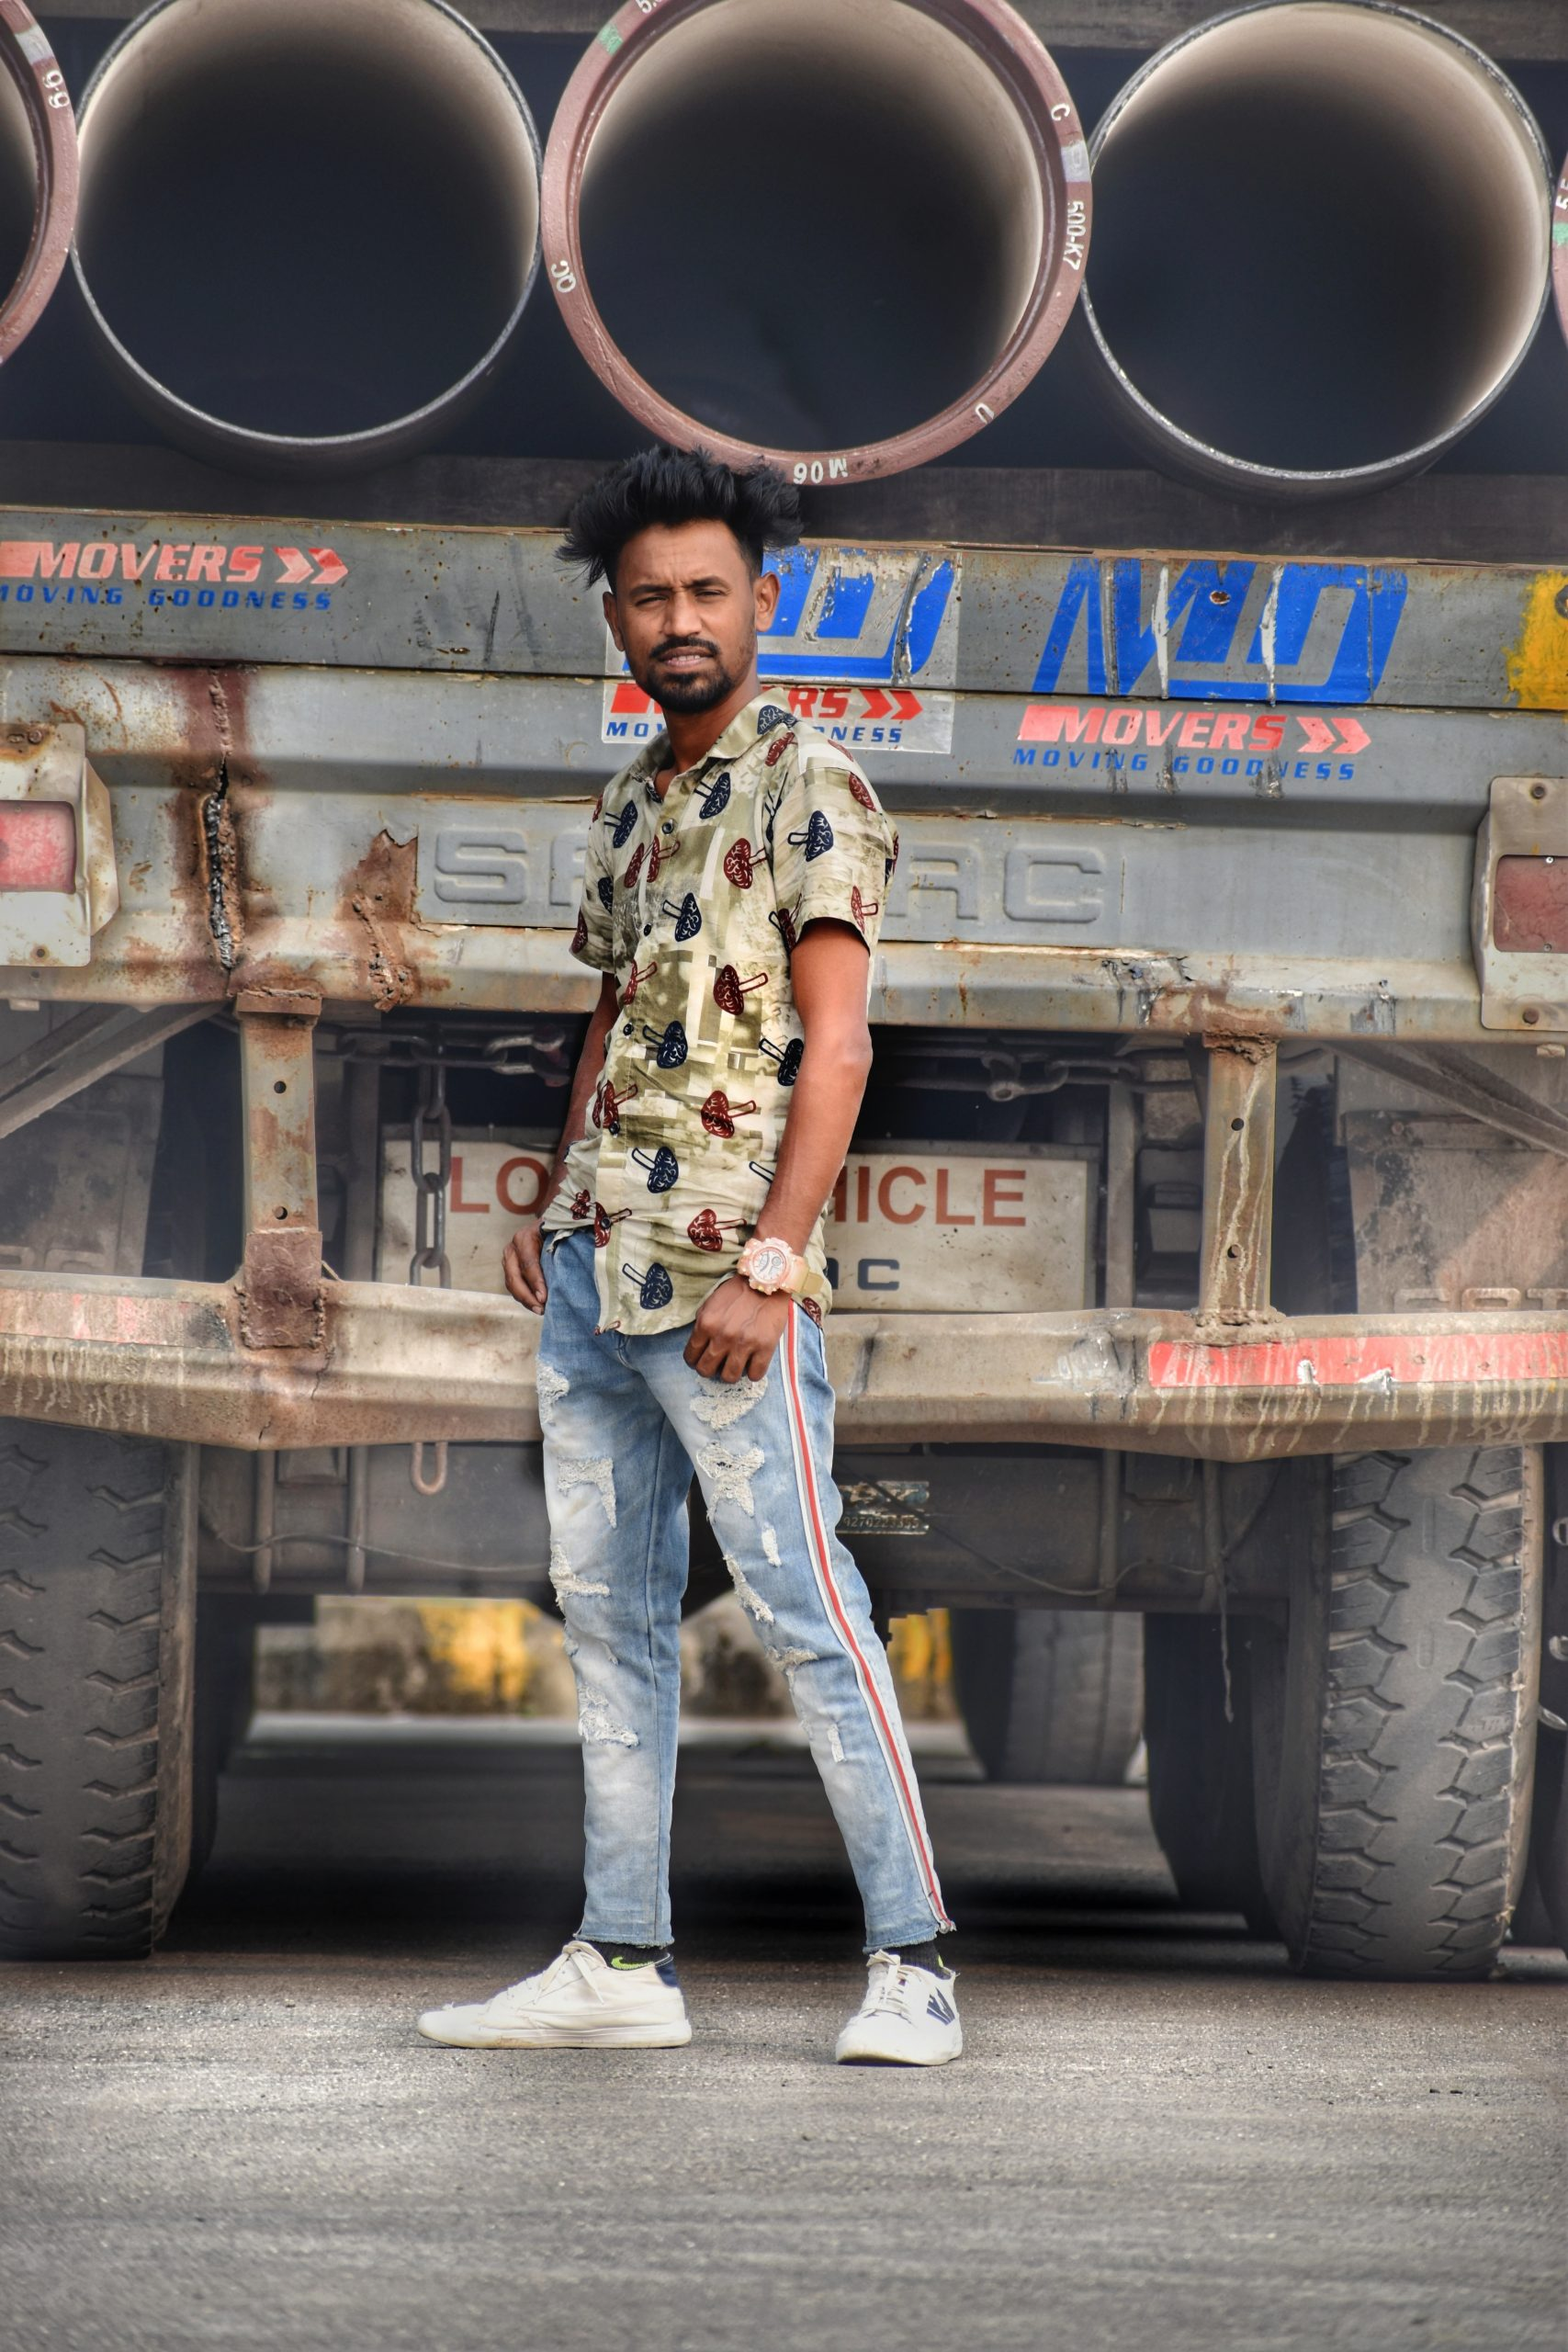 Stylish boy posing in front of Truck